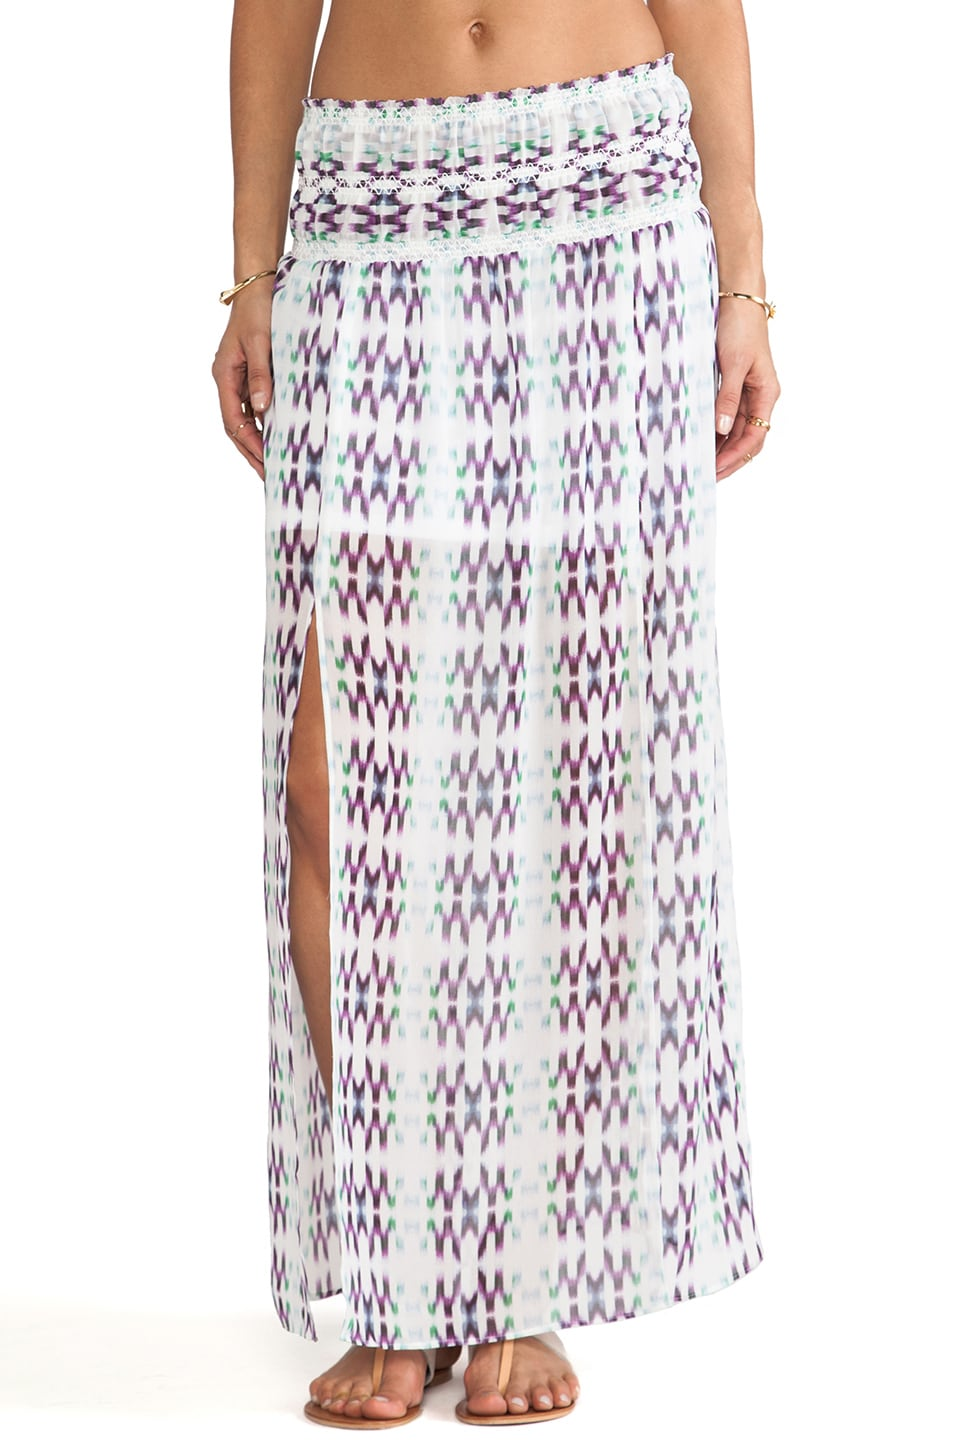 Dolce Vita Shae Skirt in Multi